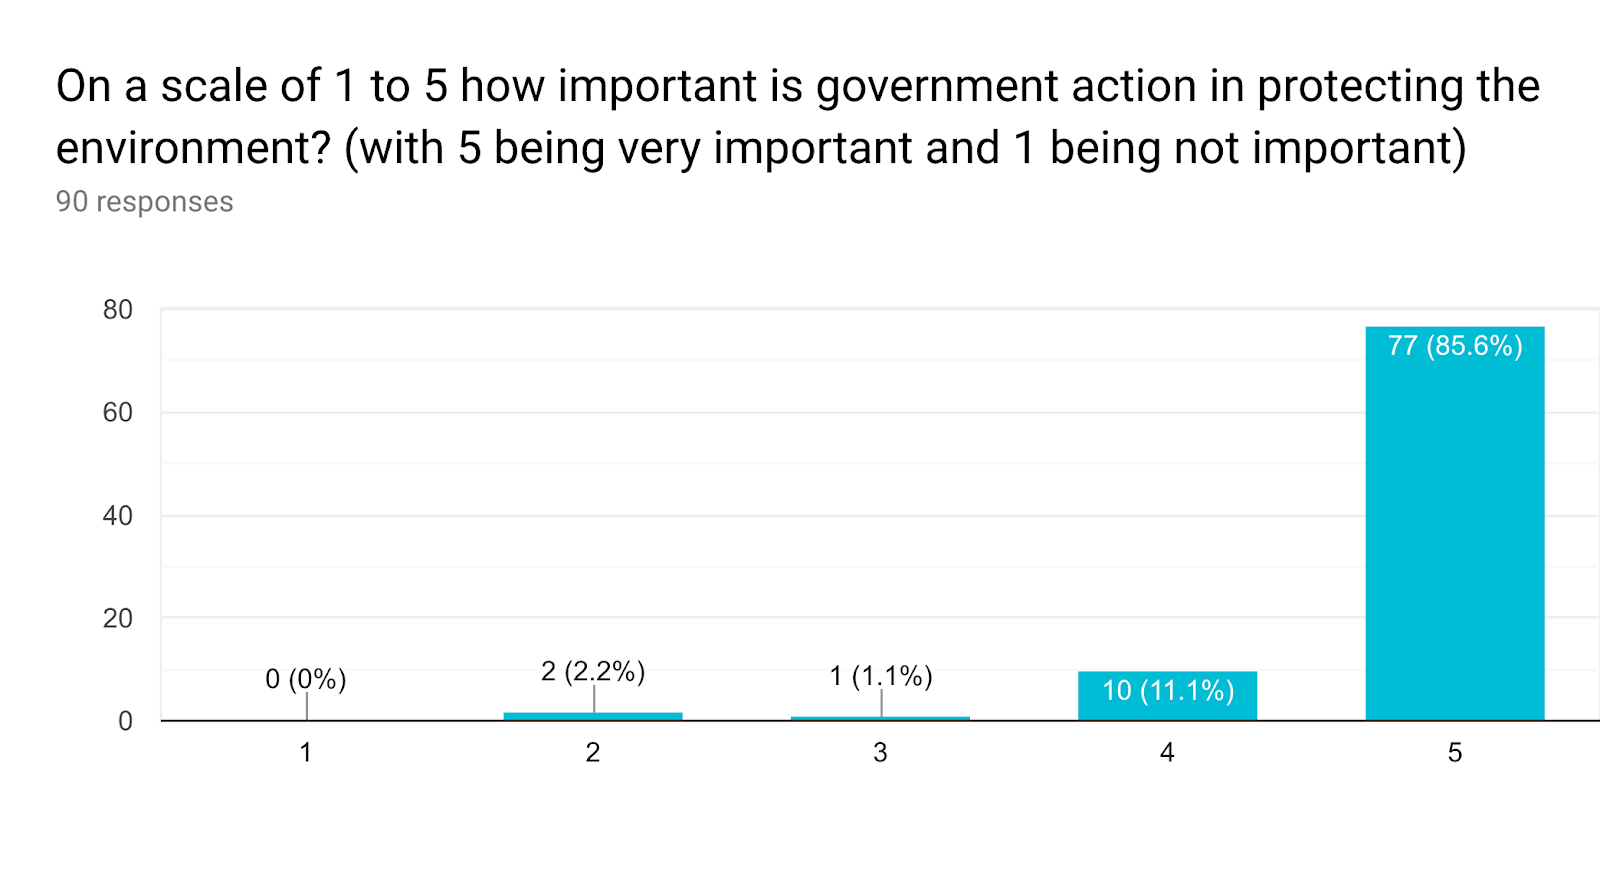 Forms response chart. Question title: On a scale of 1 to 5 how important is government action in protecting the environment? (with 5 being very important and 1 being not important). Number of responses: 90 responses.